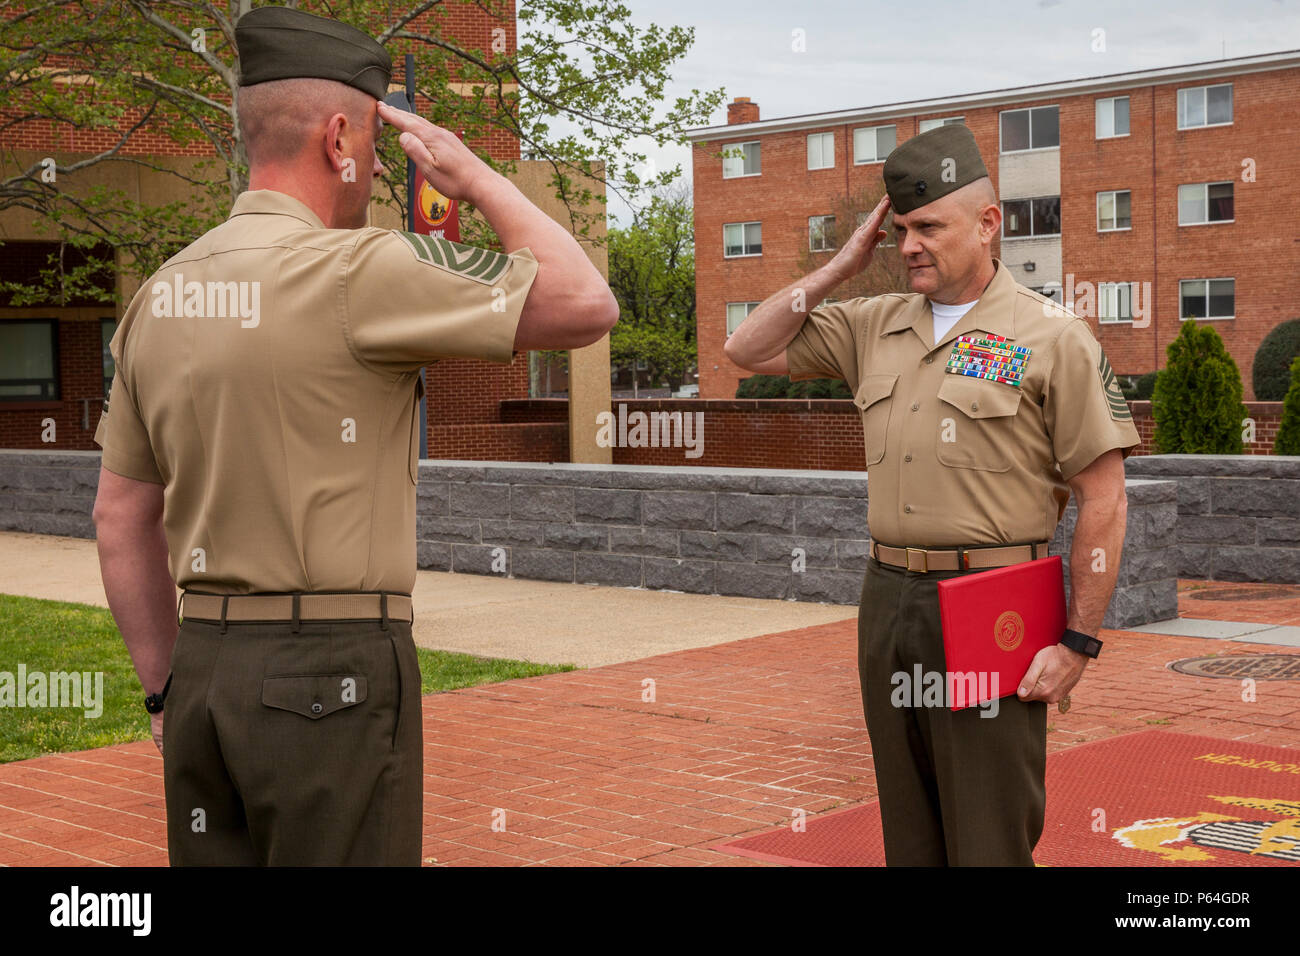 U.S. Marine Corps Sergeant Maj. Robert B. Pullen, battalion sergeant major of Headquarters and Services (H&S) Battalion, Joint Base Myer-Henderson Hall, right, salutes with 1st Sgt. Keith Connor, H&S Battalion 1st Sergeant, at Henderson Hall, April 22, 2016. Marines gathered on behalf of Col. Andrew M. Regan, commanding officer of H&S Battalion, receiving the Defense Superior Service Medal for his actions during Operation Enduring Freedom and Operation Freedom's Sentinel. (U.S. Marine Corps photo by Lance Cpl. Hailey D. Stuart/Released) - Stock Image